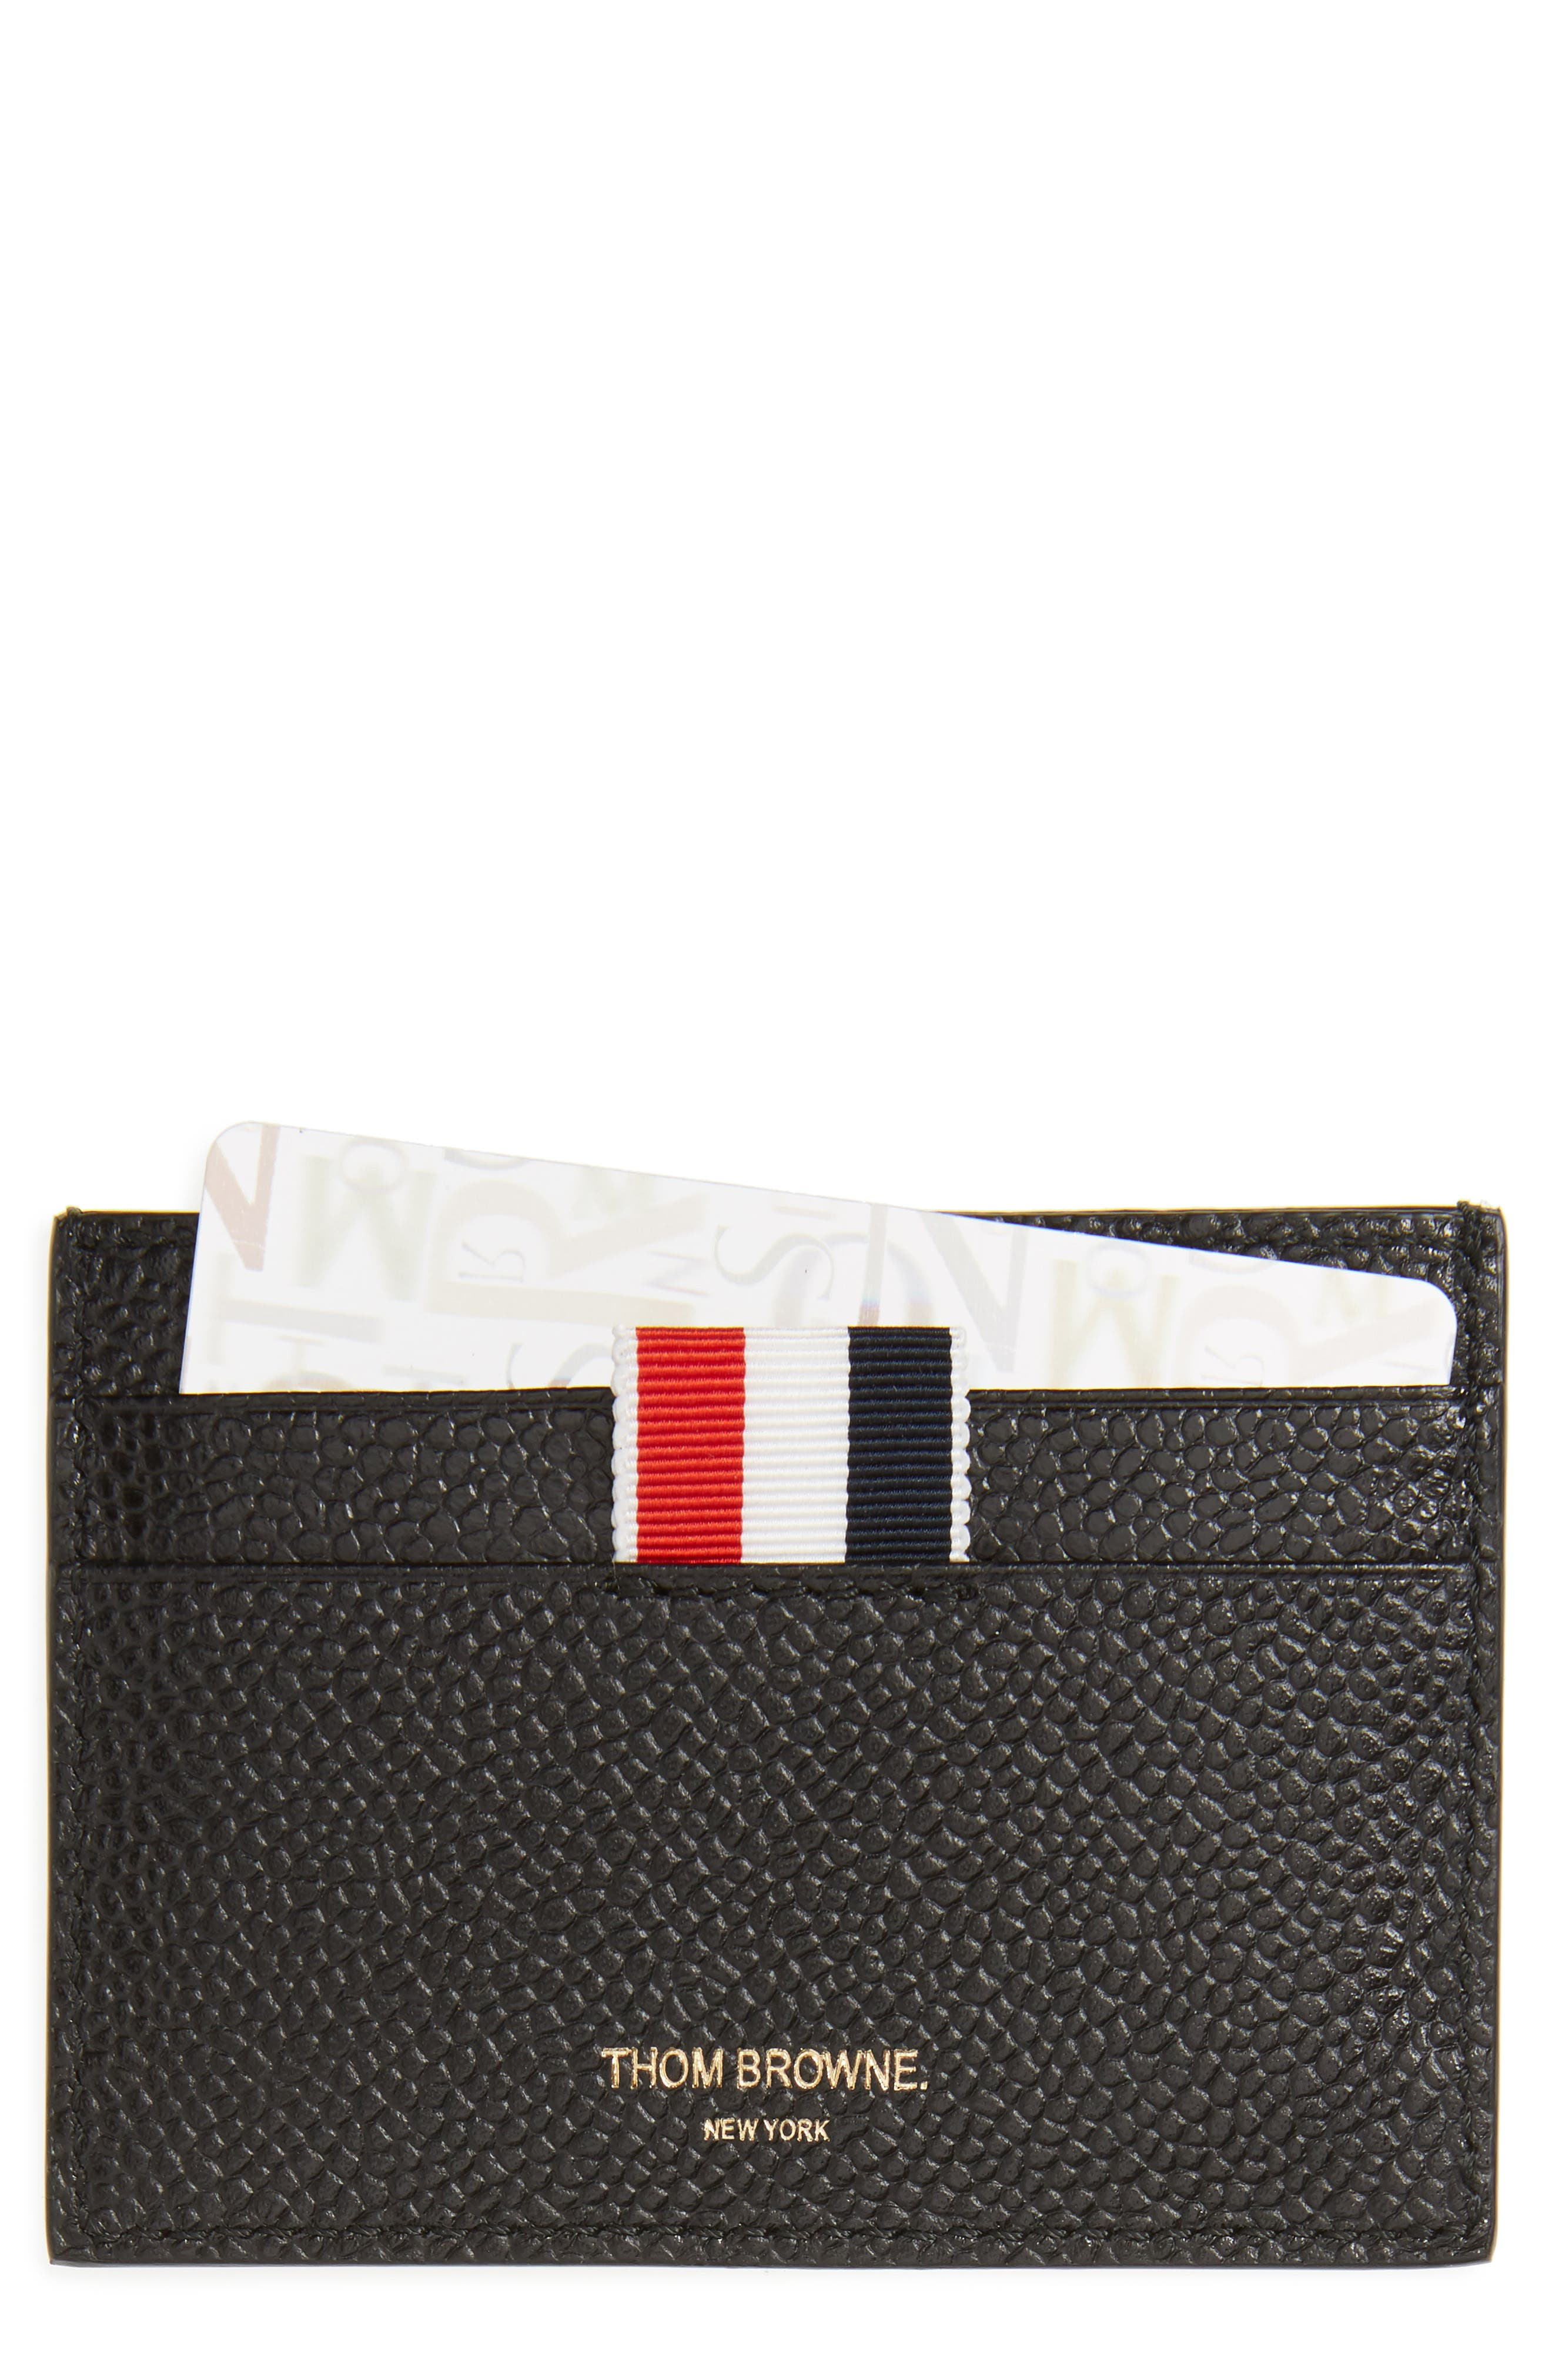 Alternate Image 1 Selected - Thom Browne Diagonal Stripe Leather Card Case